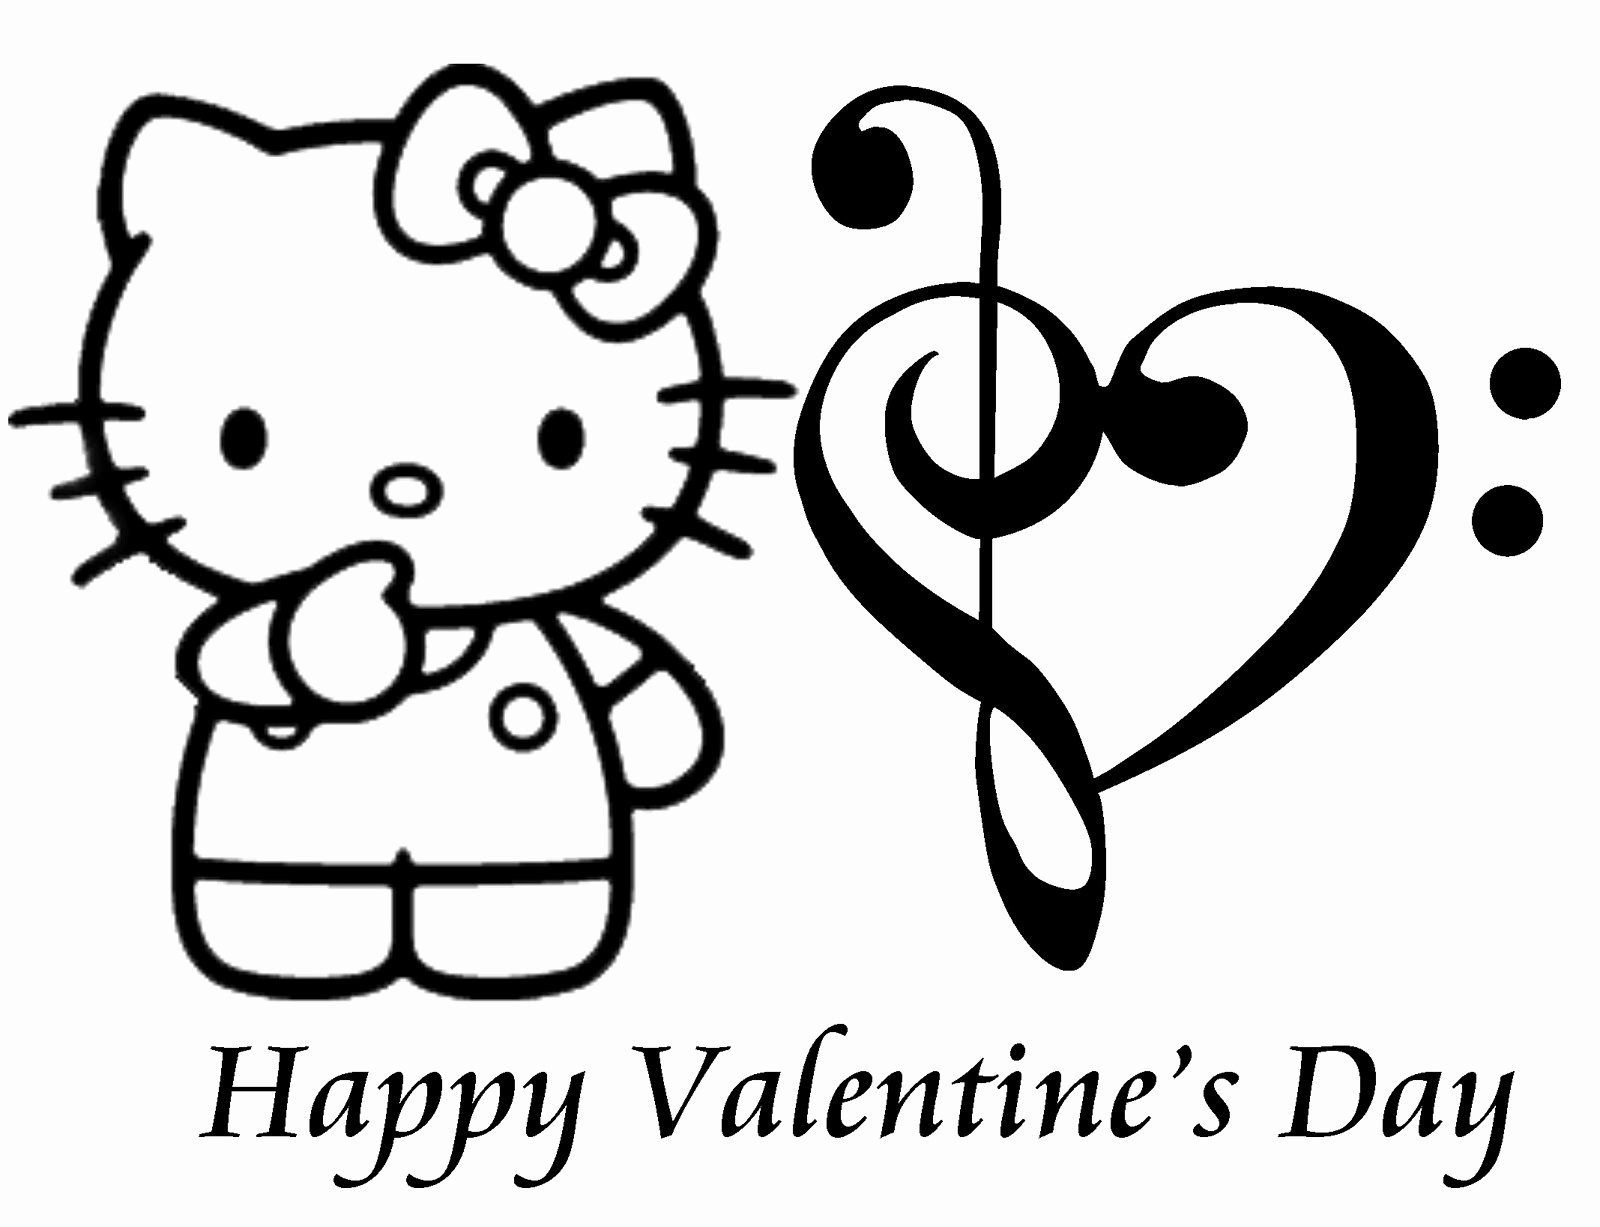 Printable Valentines Coloring Pages Best Of Free Printable Hello Kitty Coloring Pages For Kids Hello Kitty Colouring Pages Hello Kitty Coloring Kitty Coloring